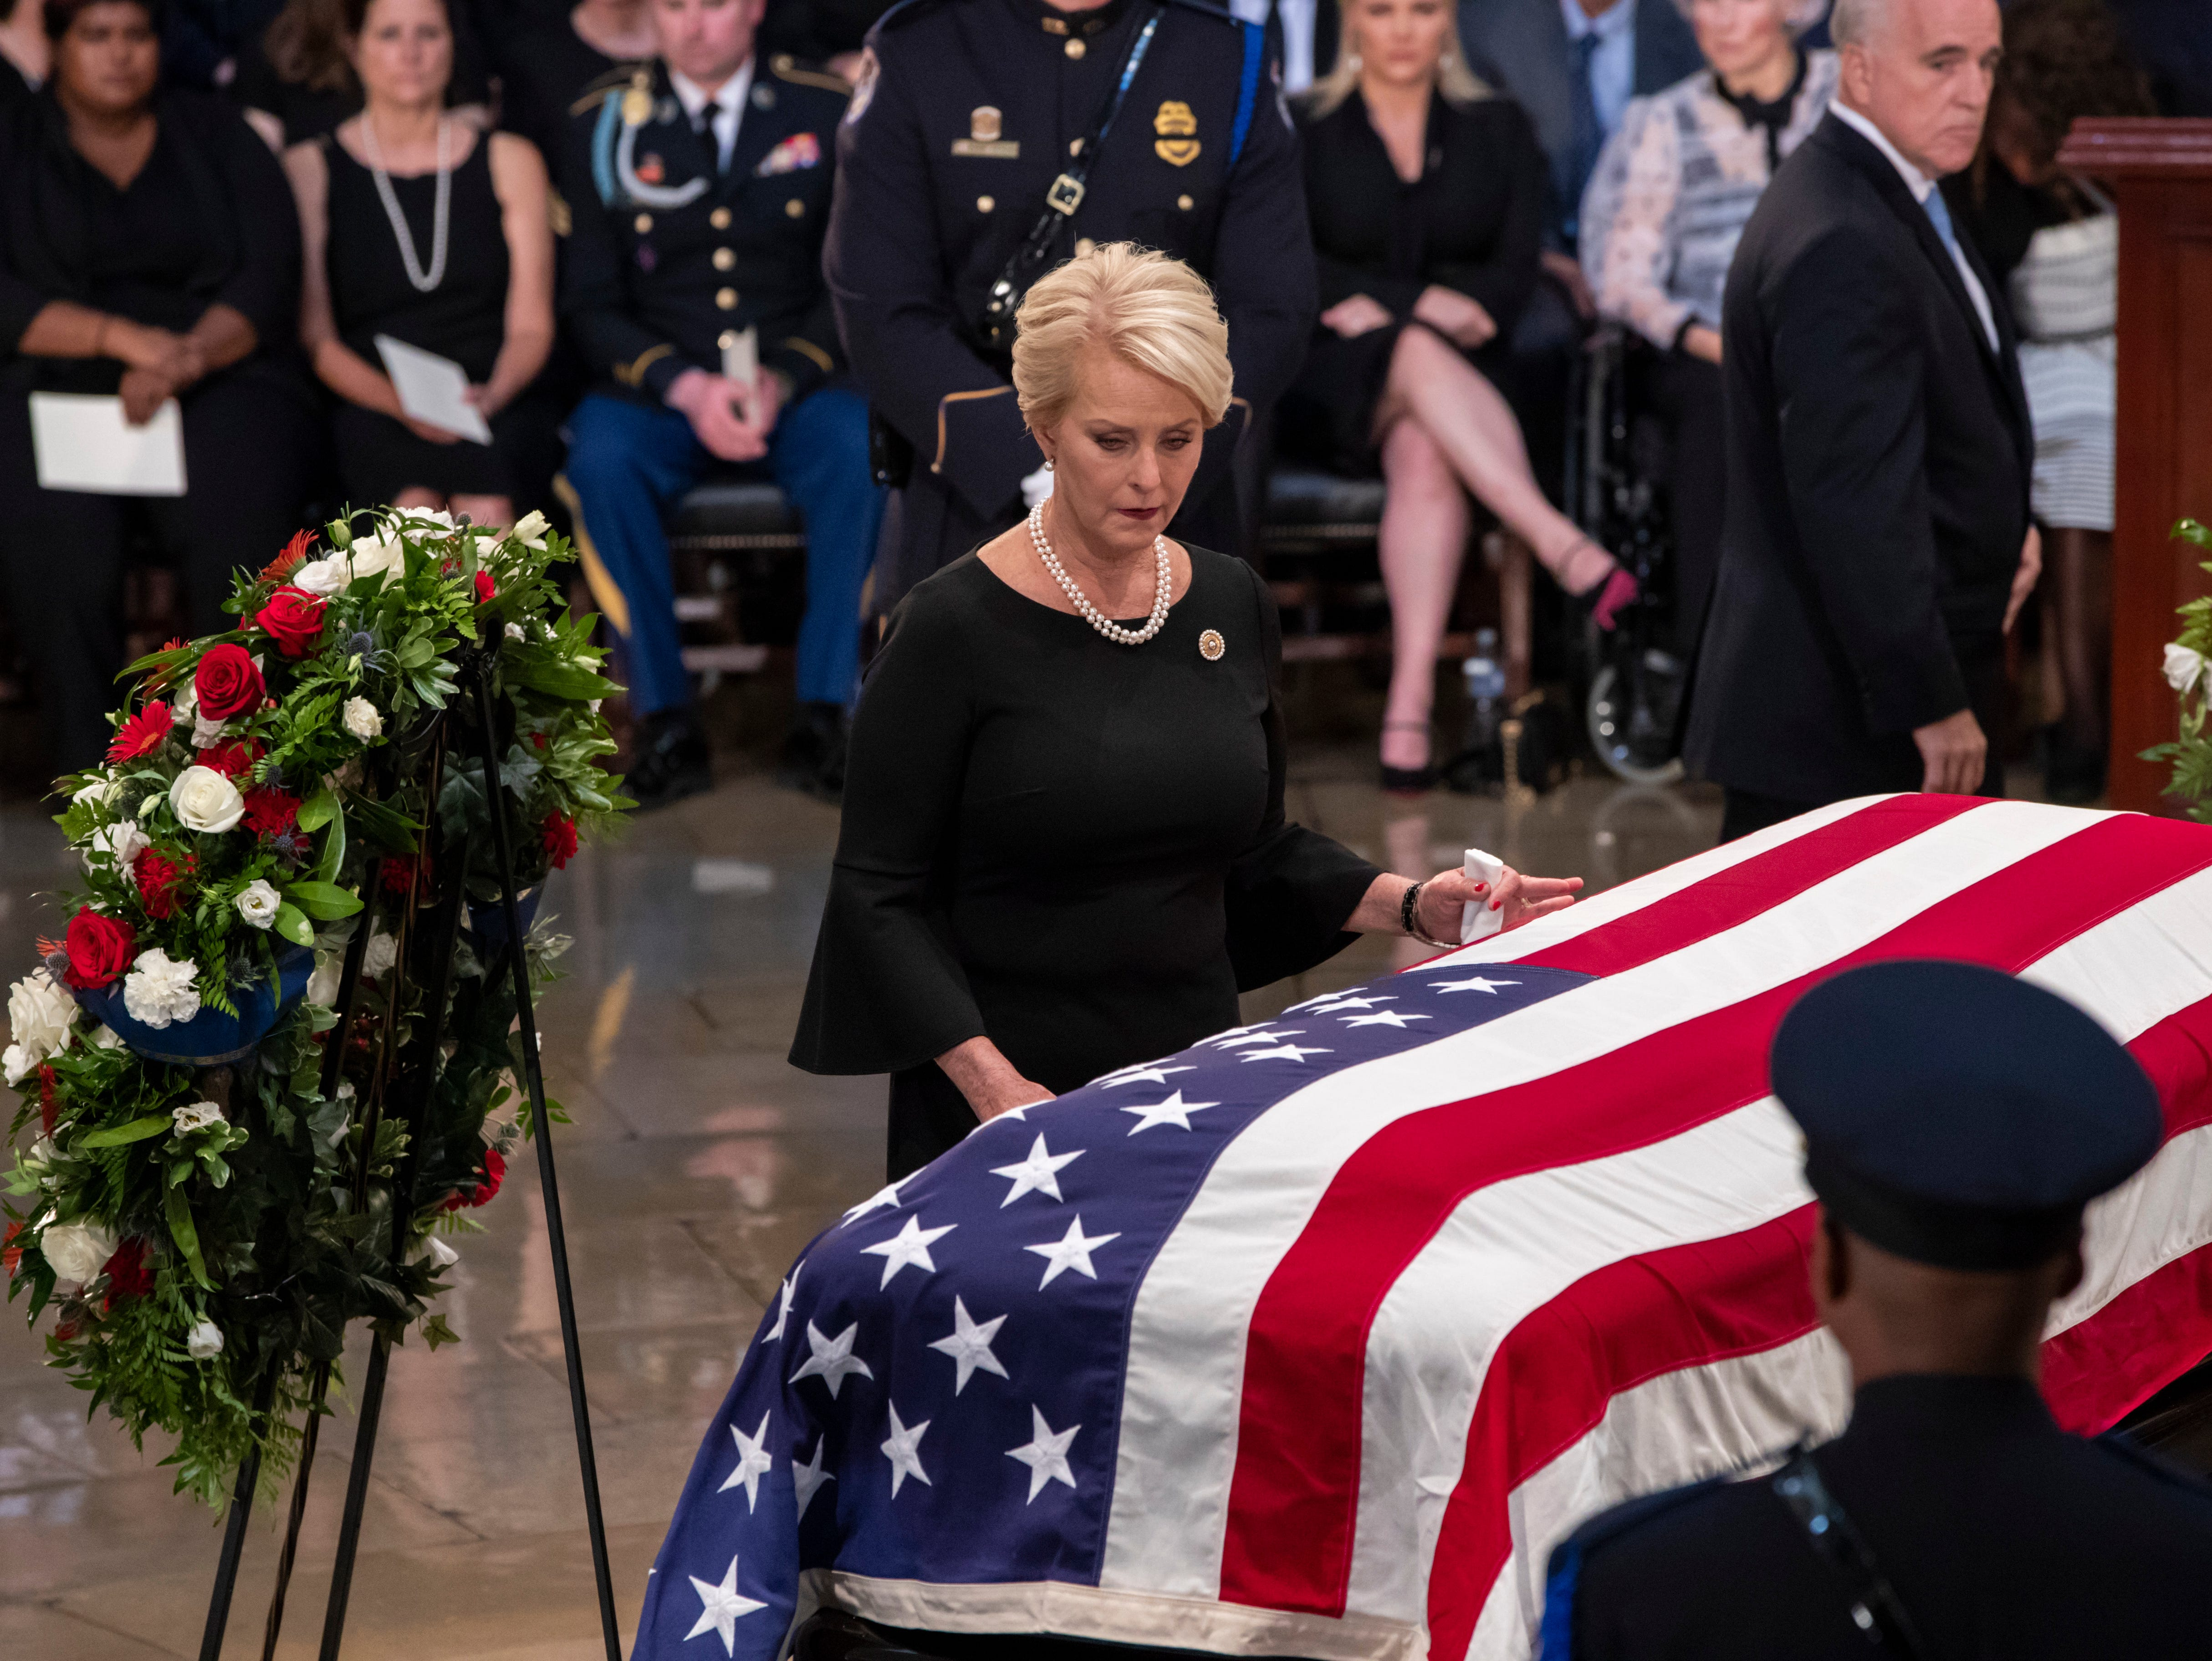 Cindy McCain, wife of Sen. John McCain, R-Ariz., touches his flag-draped casket during a farewell ceremony in the U.S. Capitol rotunda, Friday, Aug. 31, 2018, in Washington. (AP Photo/J. Scott Applewhite)